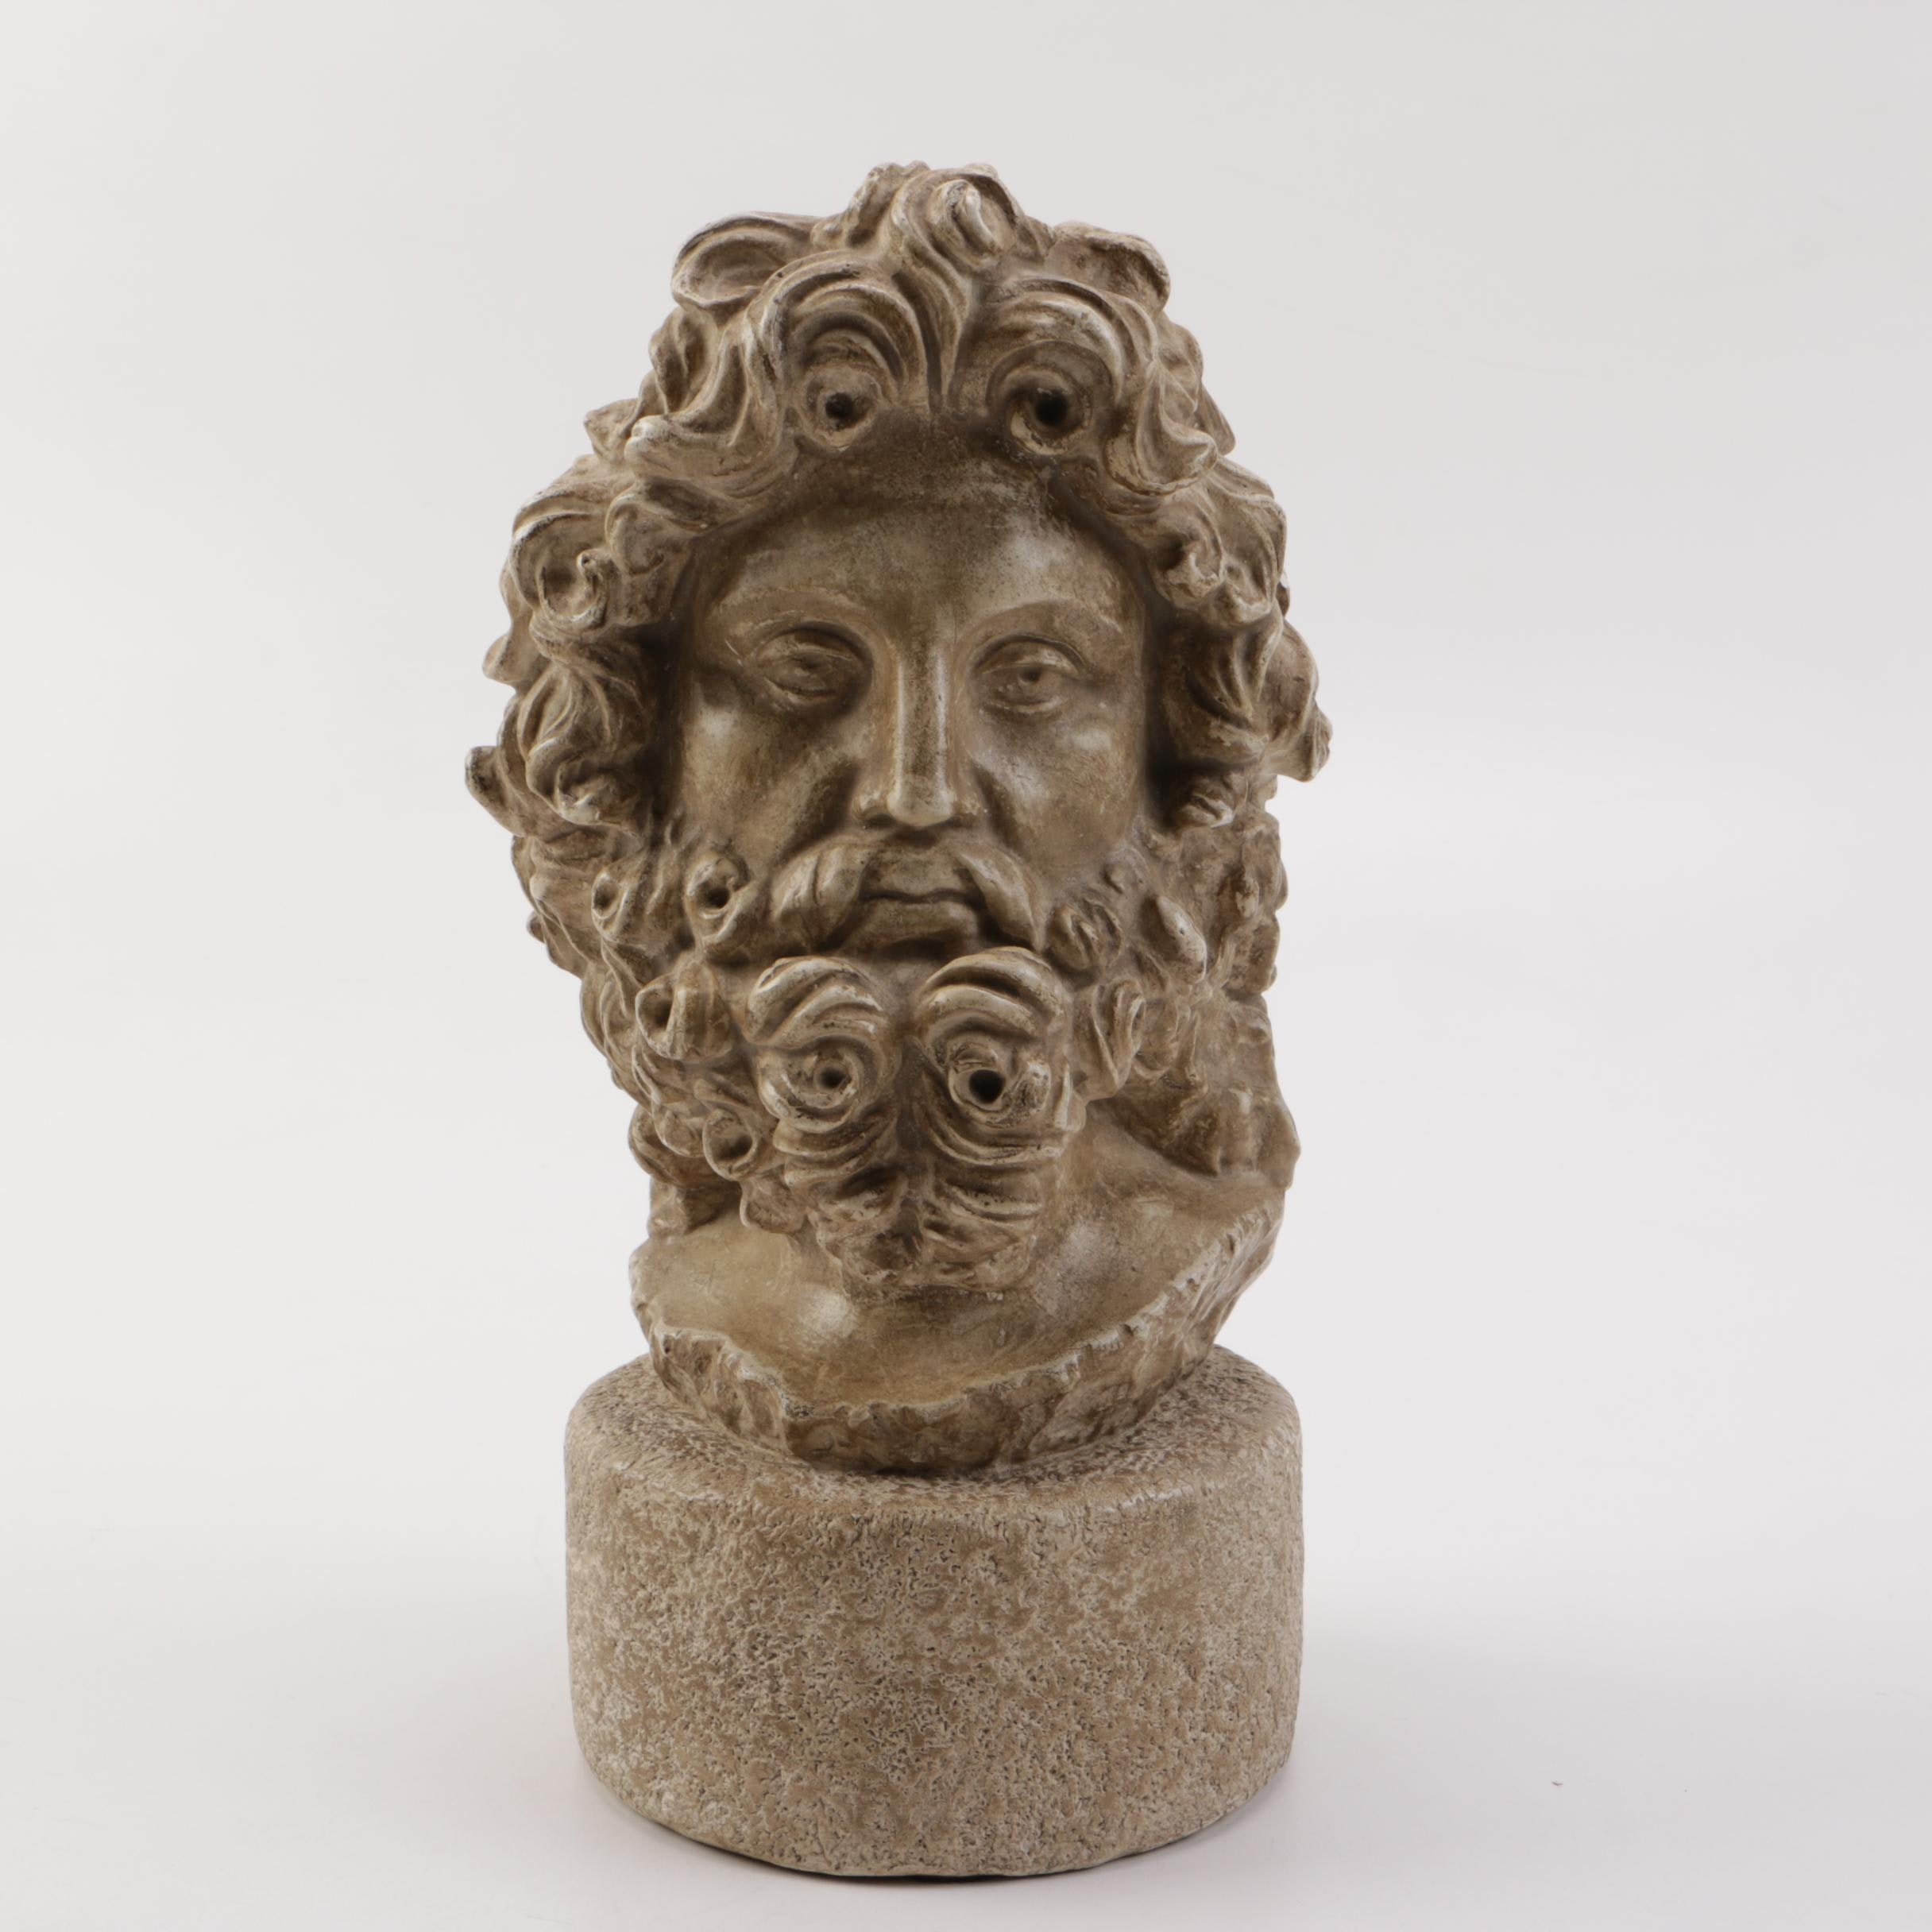 Caproni Reproduction Resin Bust of Zeus